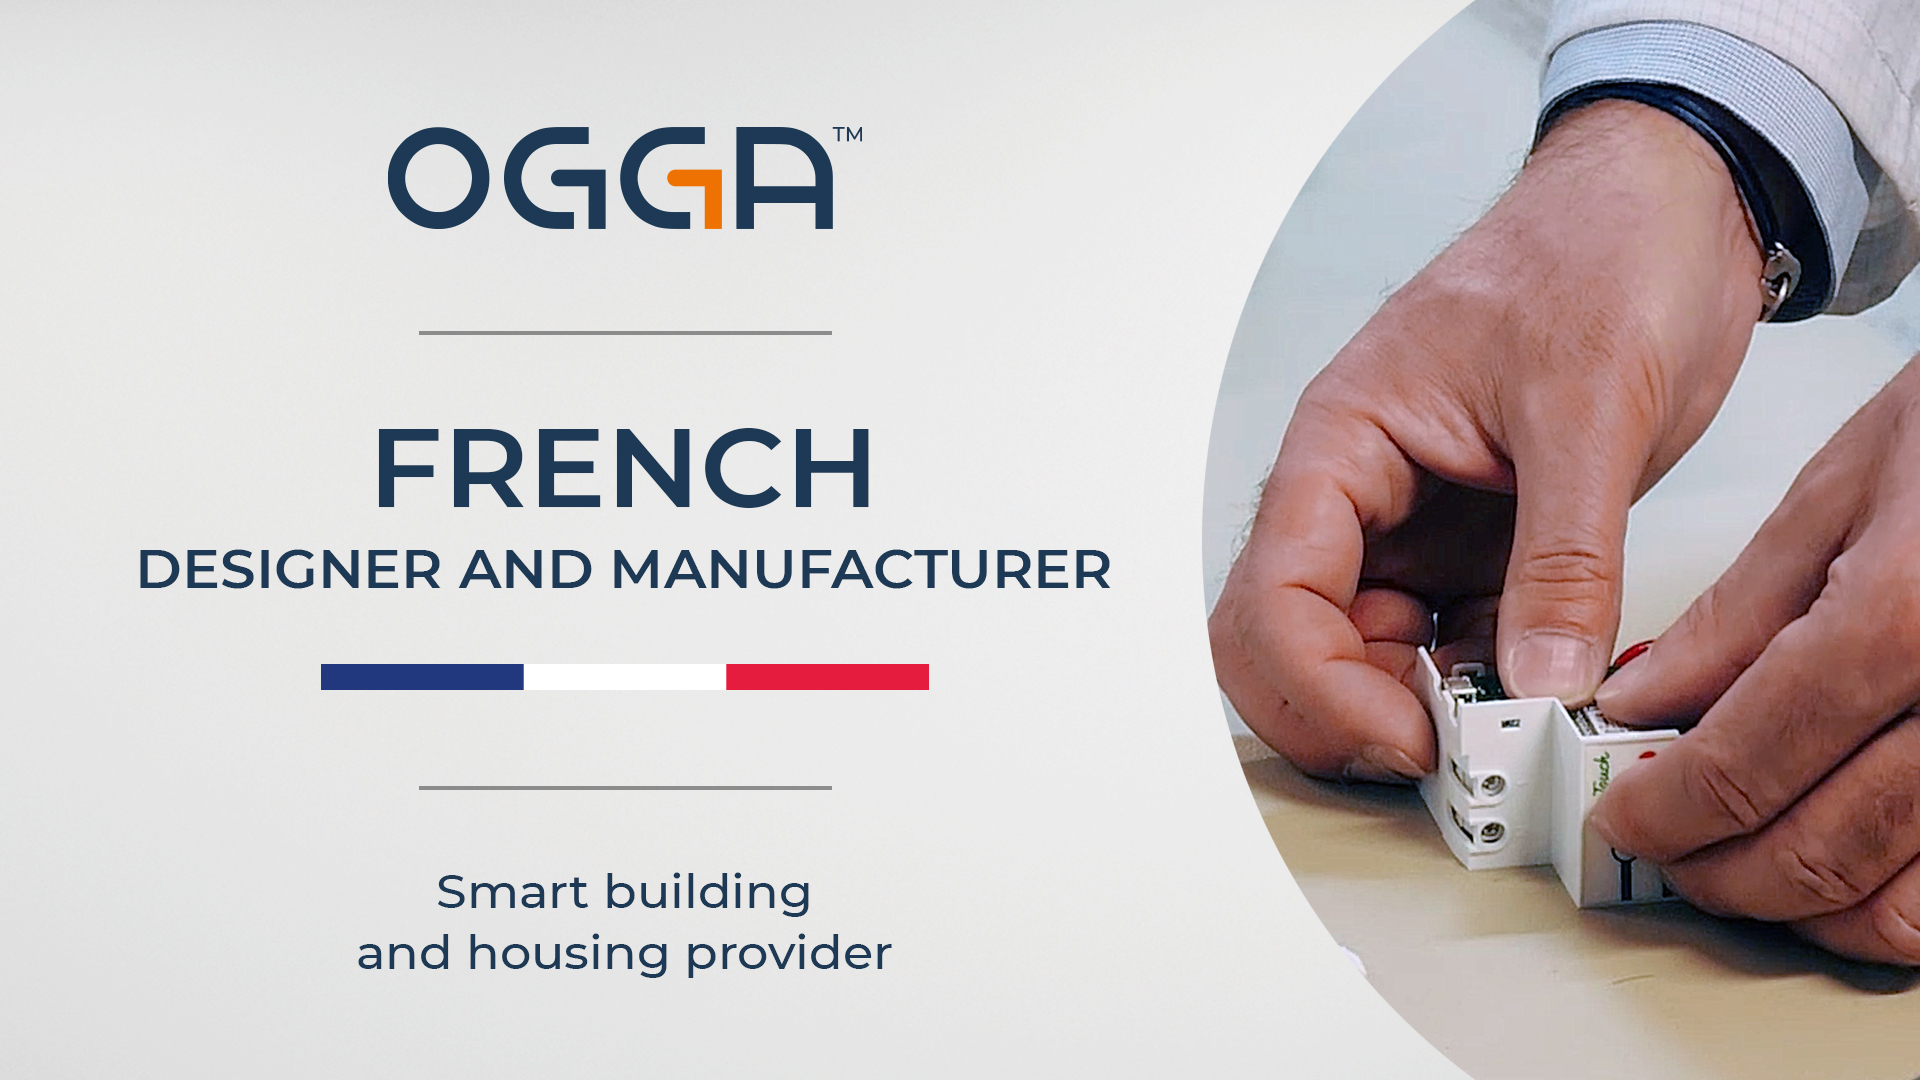 [Sustainable development] Why did OGGA chose a 100% french integration